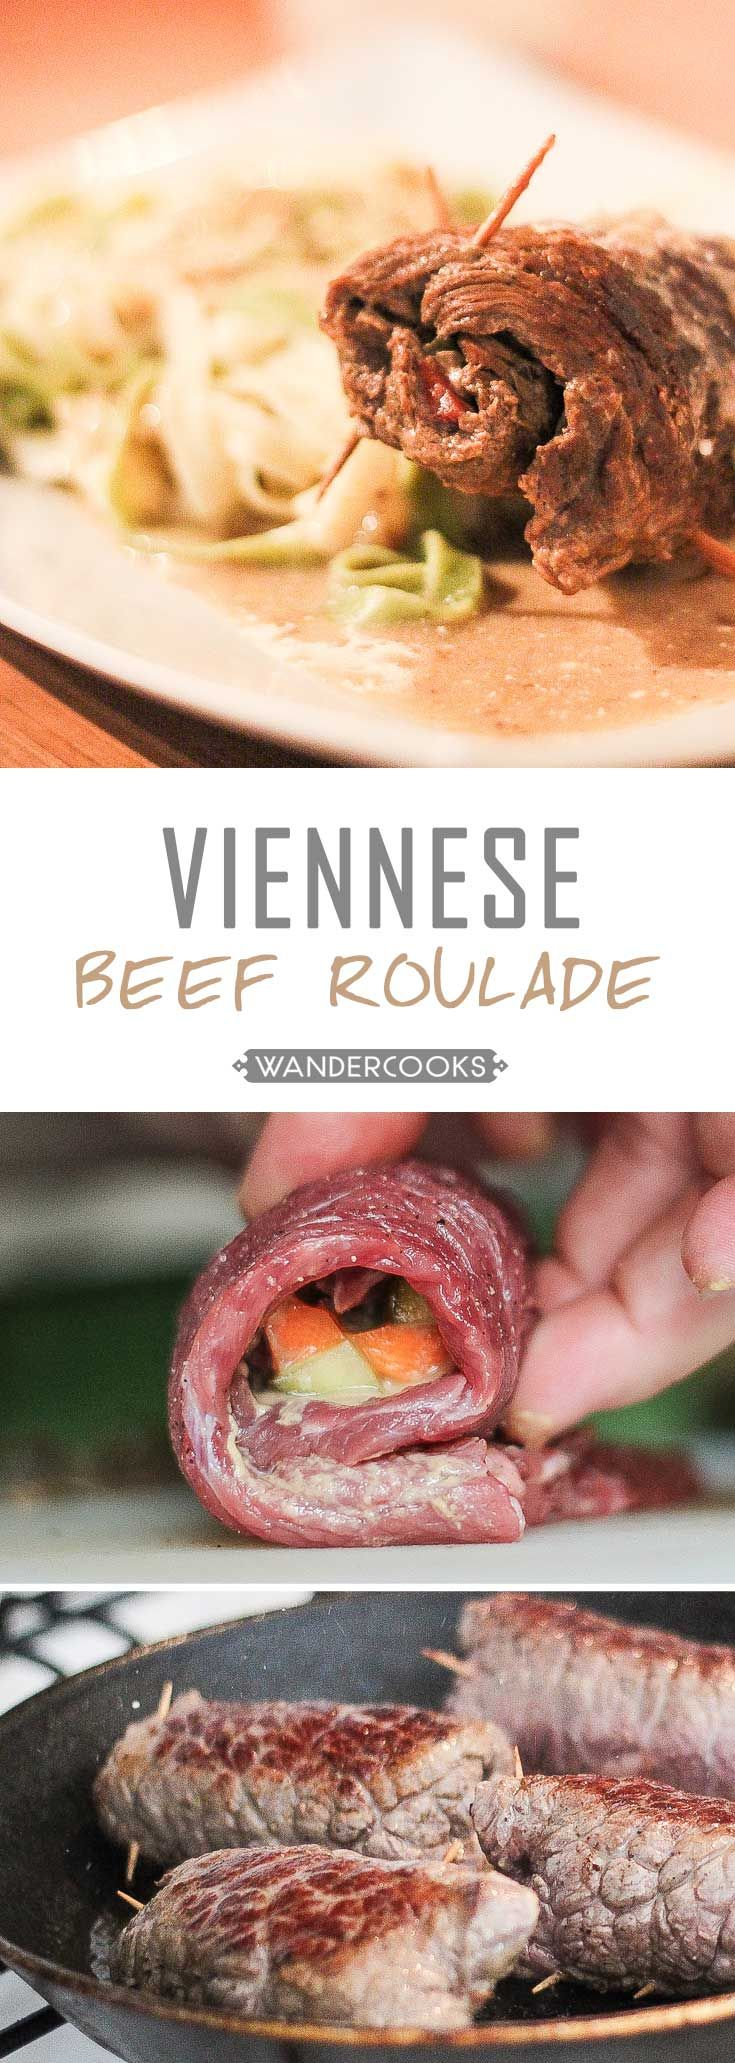 Viennese Beef Roulade - Steaming goodness, drowned in a creamy gravy and accompanied by al dente tagliatelle. | wandercooks.com